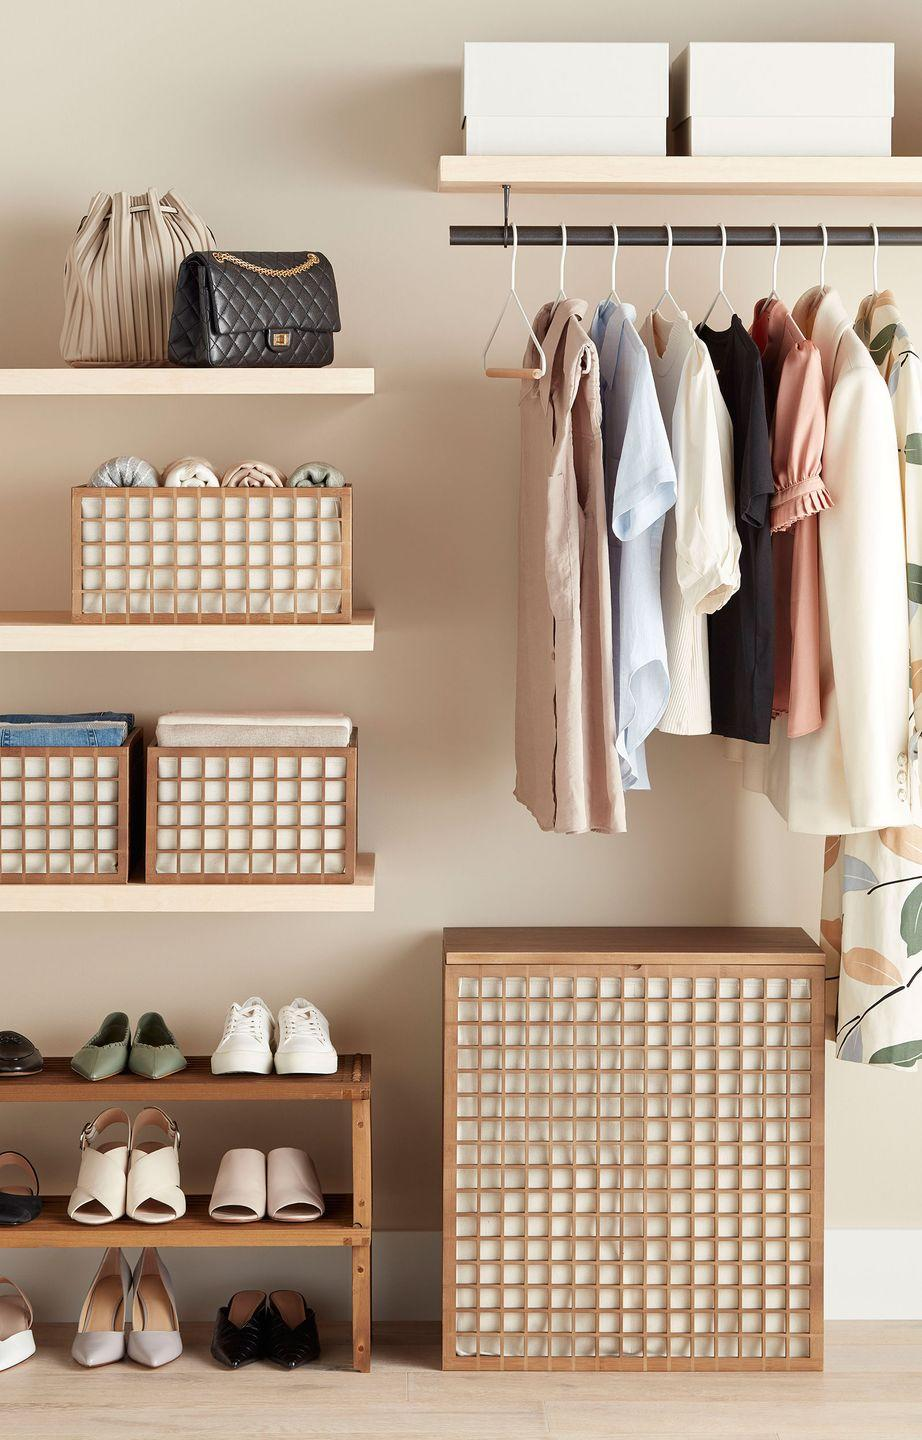 Photo credit: Jay Newby / The Container Store x KonMari